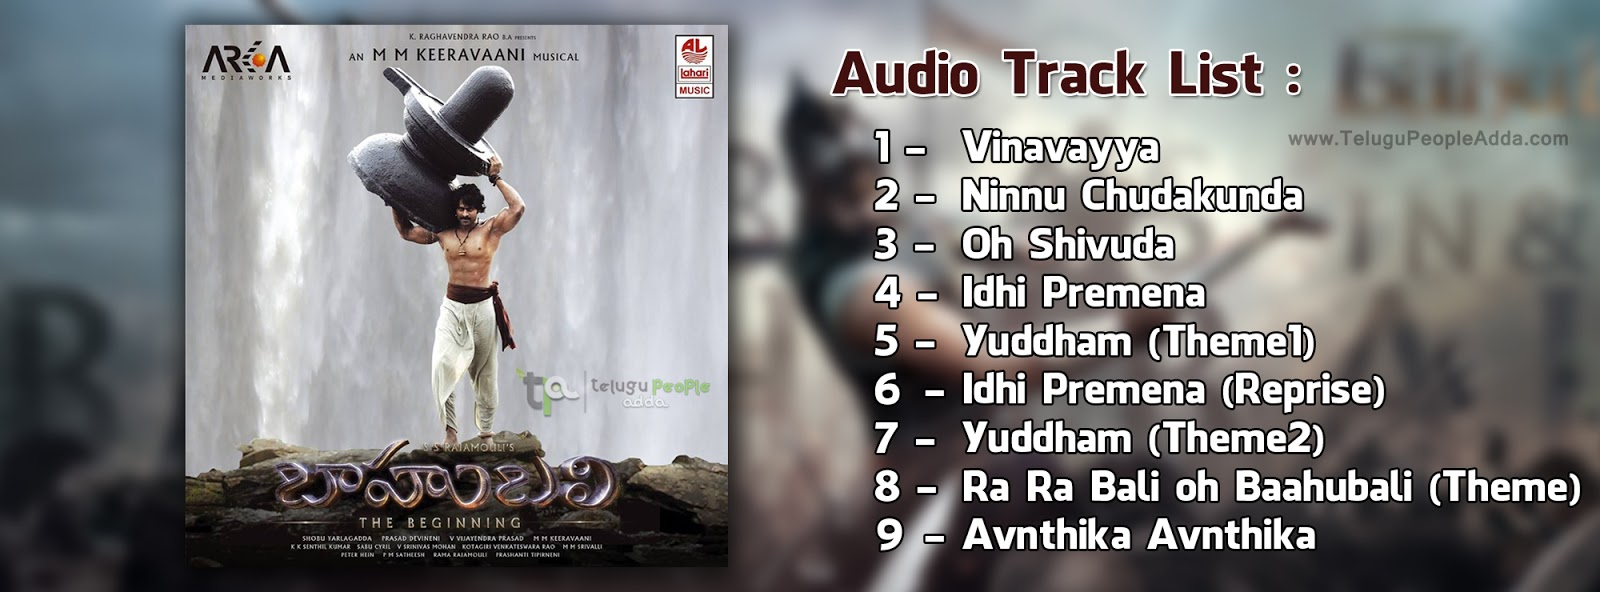 Baahubali Movie Audio Track List | Prabhas | Anushka | Rajamouli